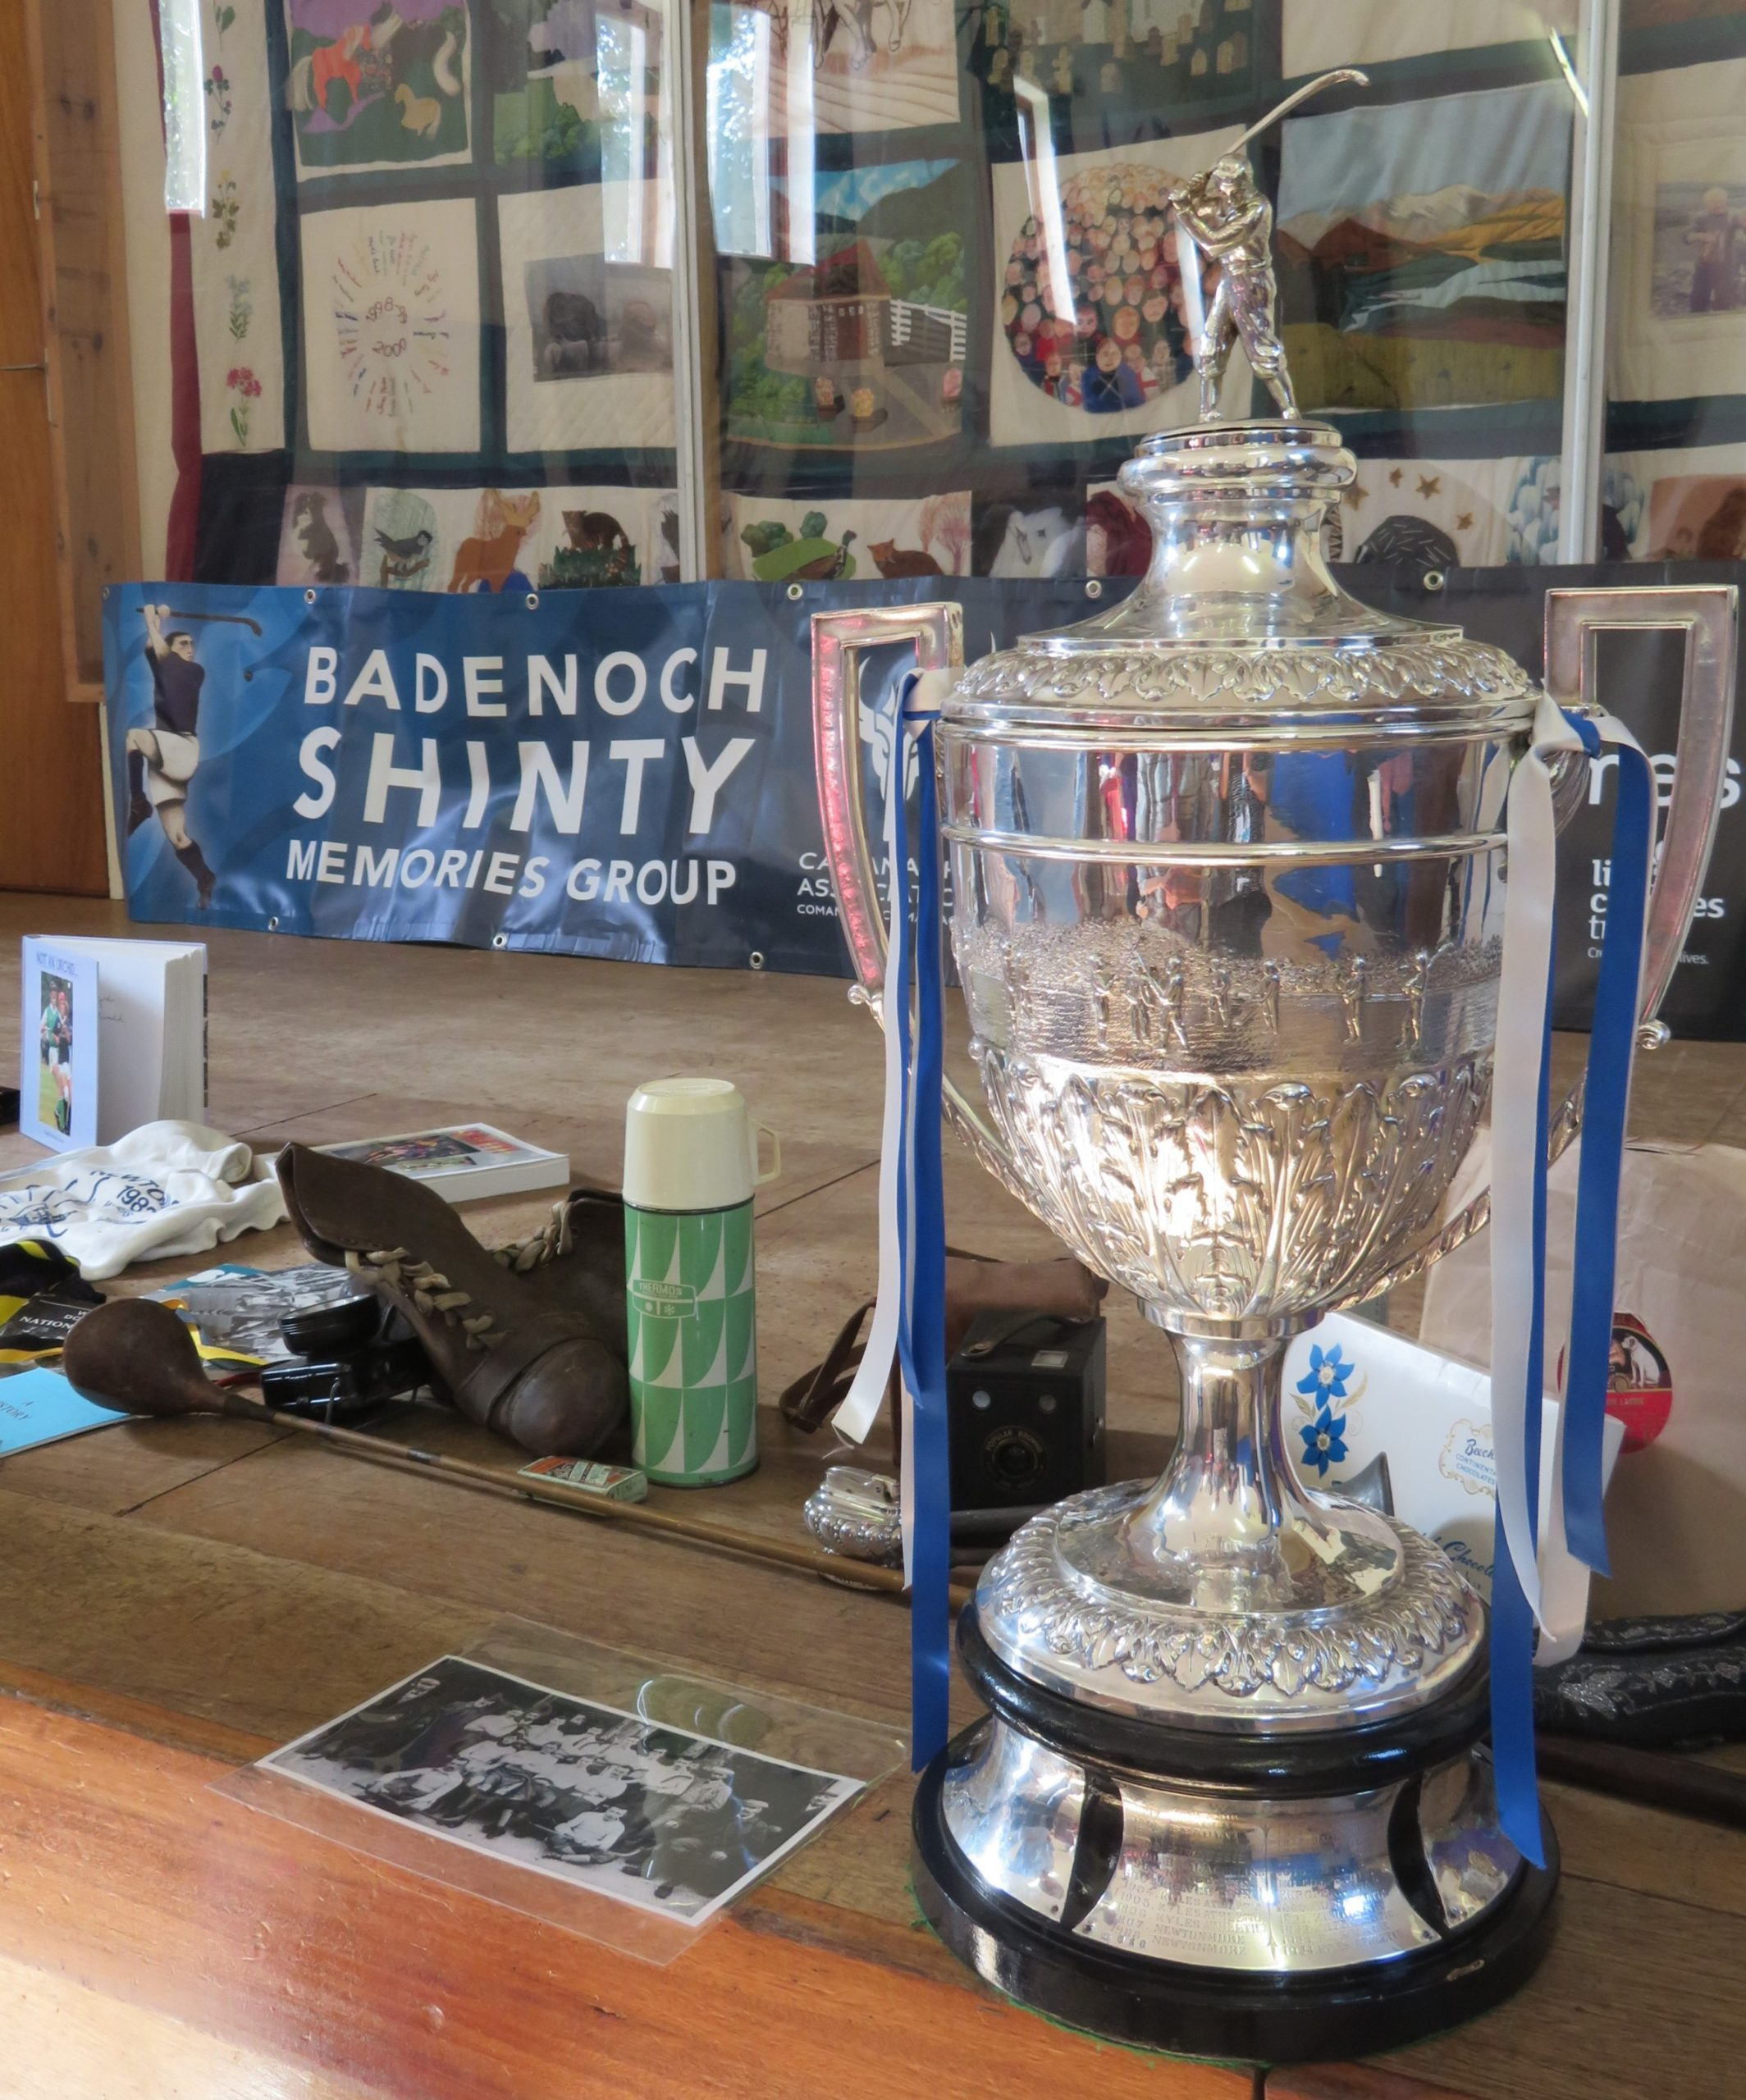 Camanachd Cup in Laggan Village Hall, September 2019. Image credit: Badenoch Shinty Memories Group